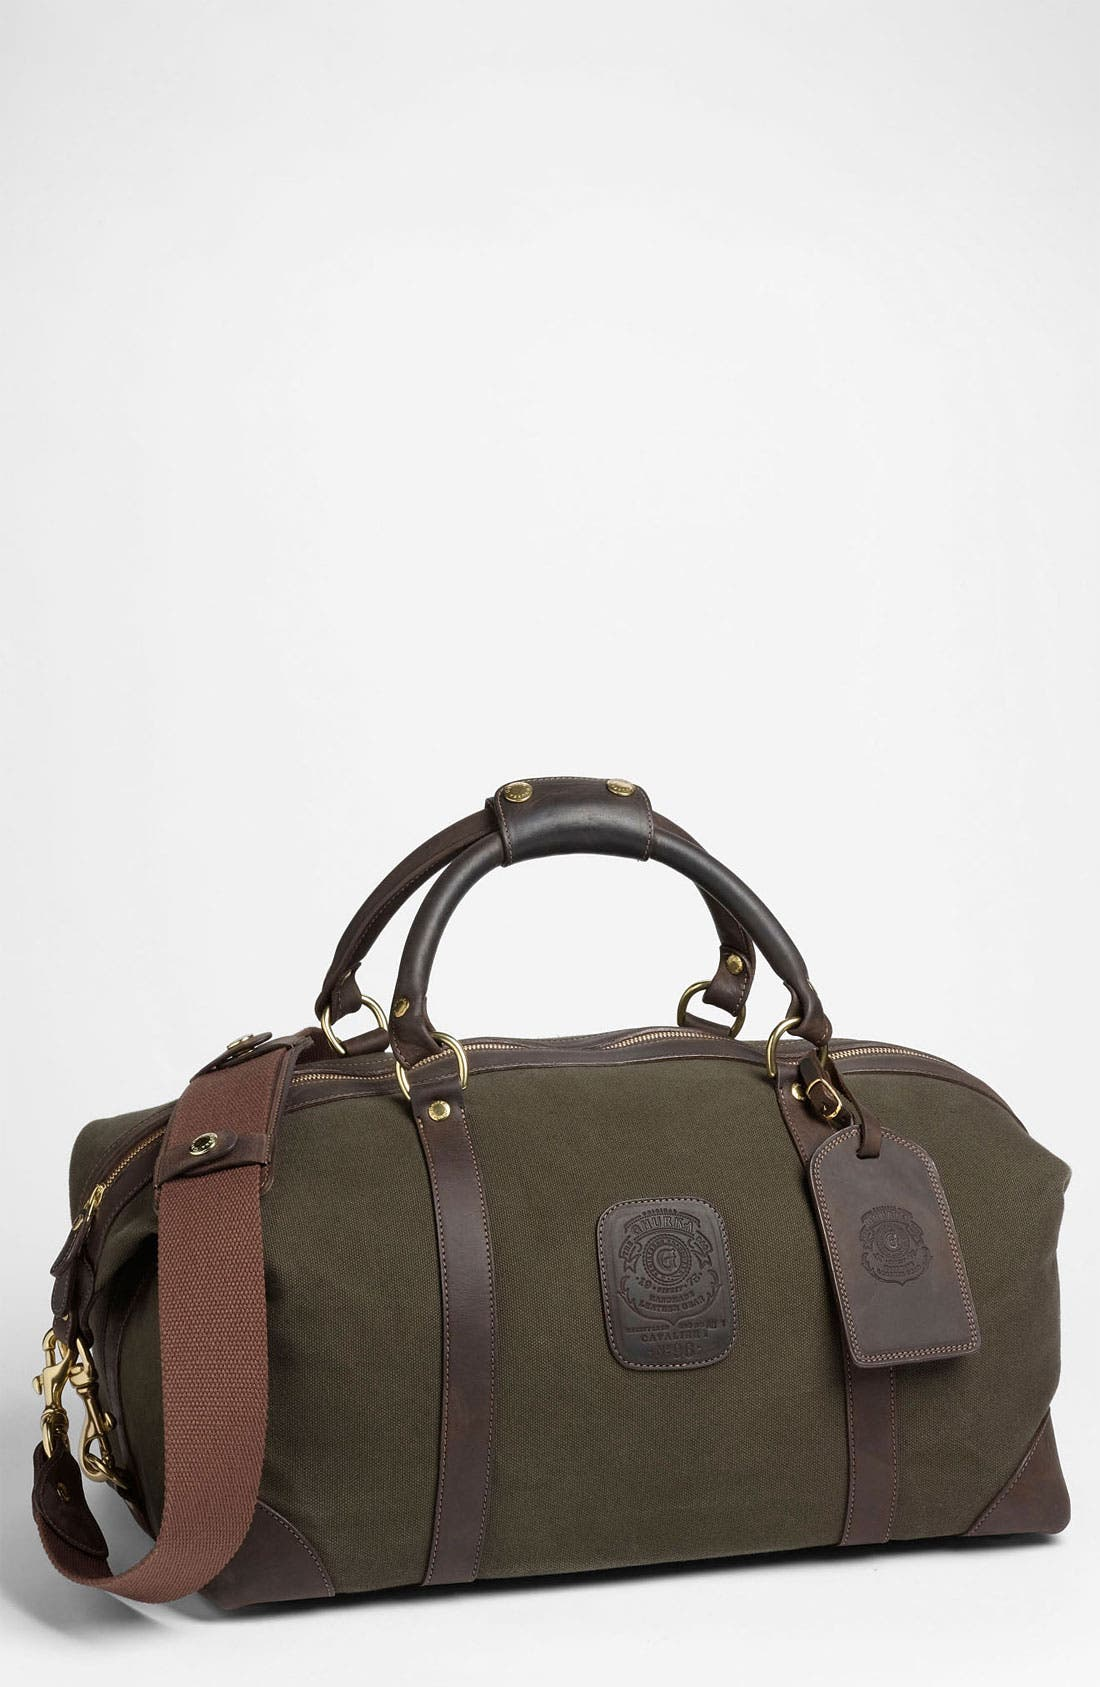 Main Image - Ghurka 'Cavalier I' Canvas Duffel Bag